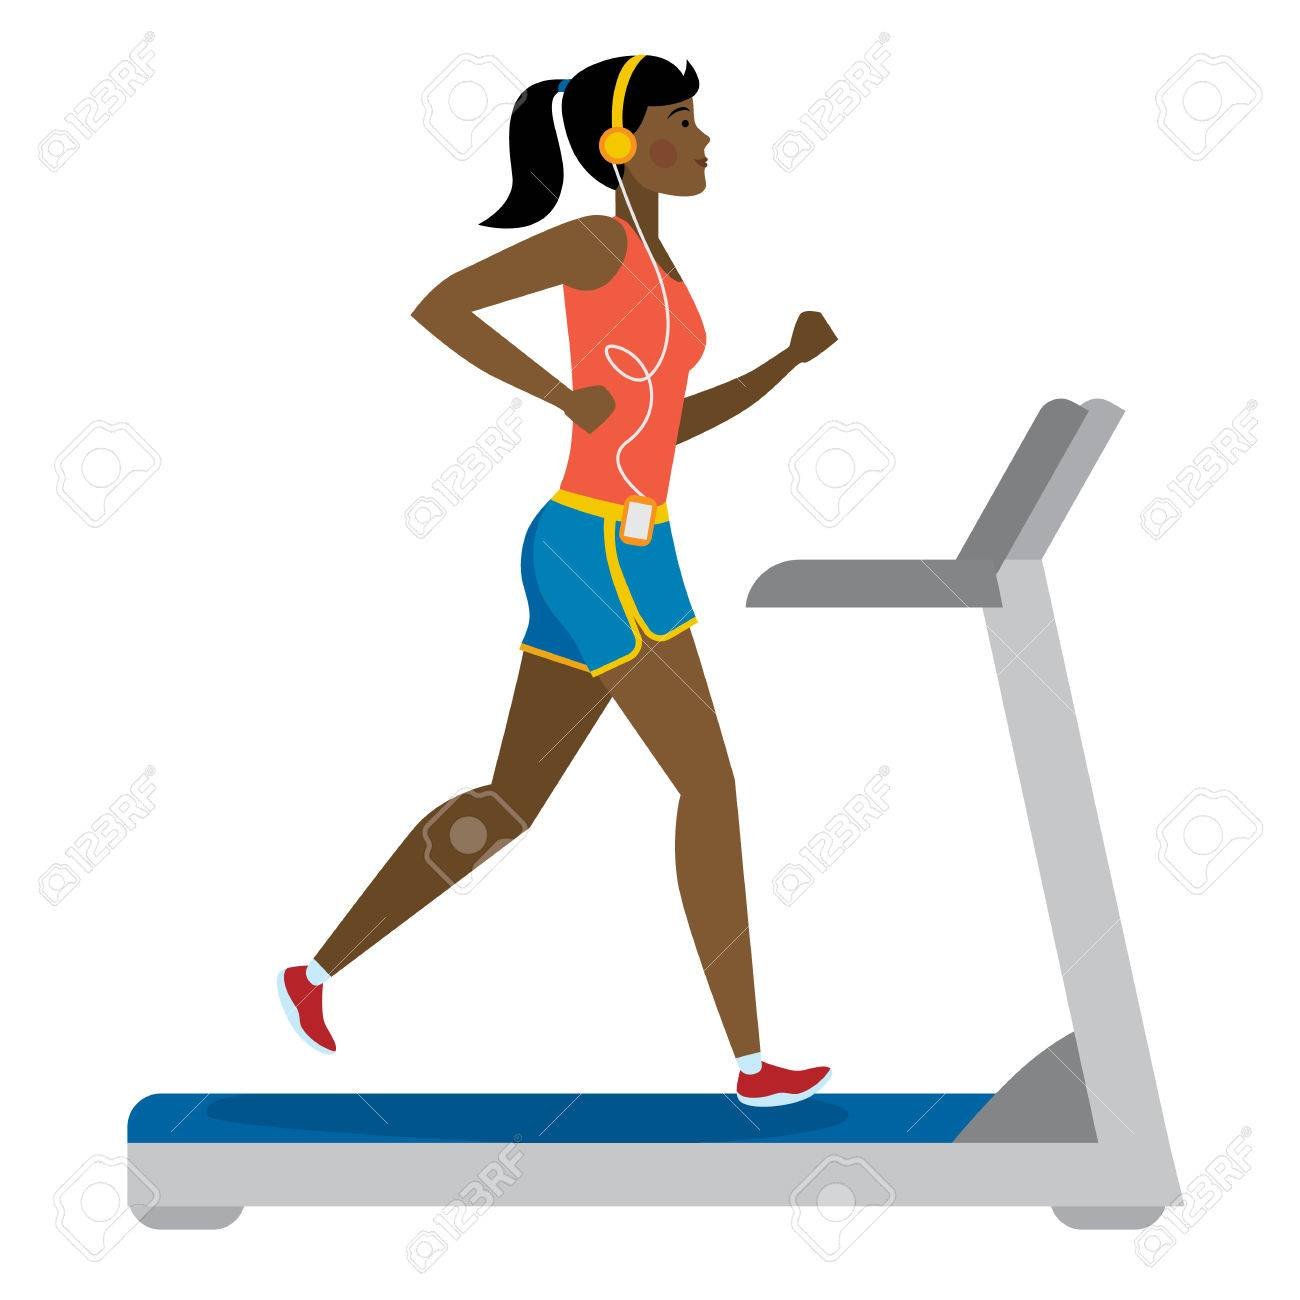 Image result for girl running getting fit cartoon free image